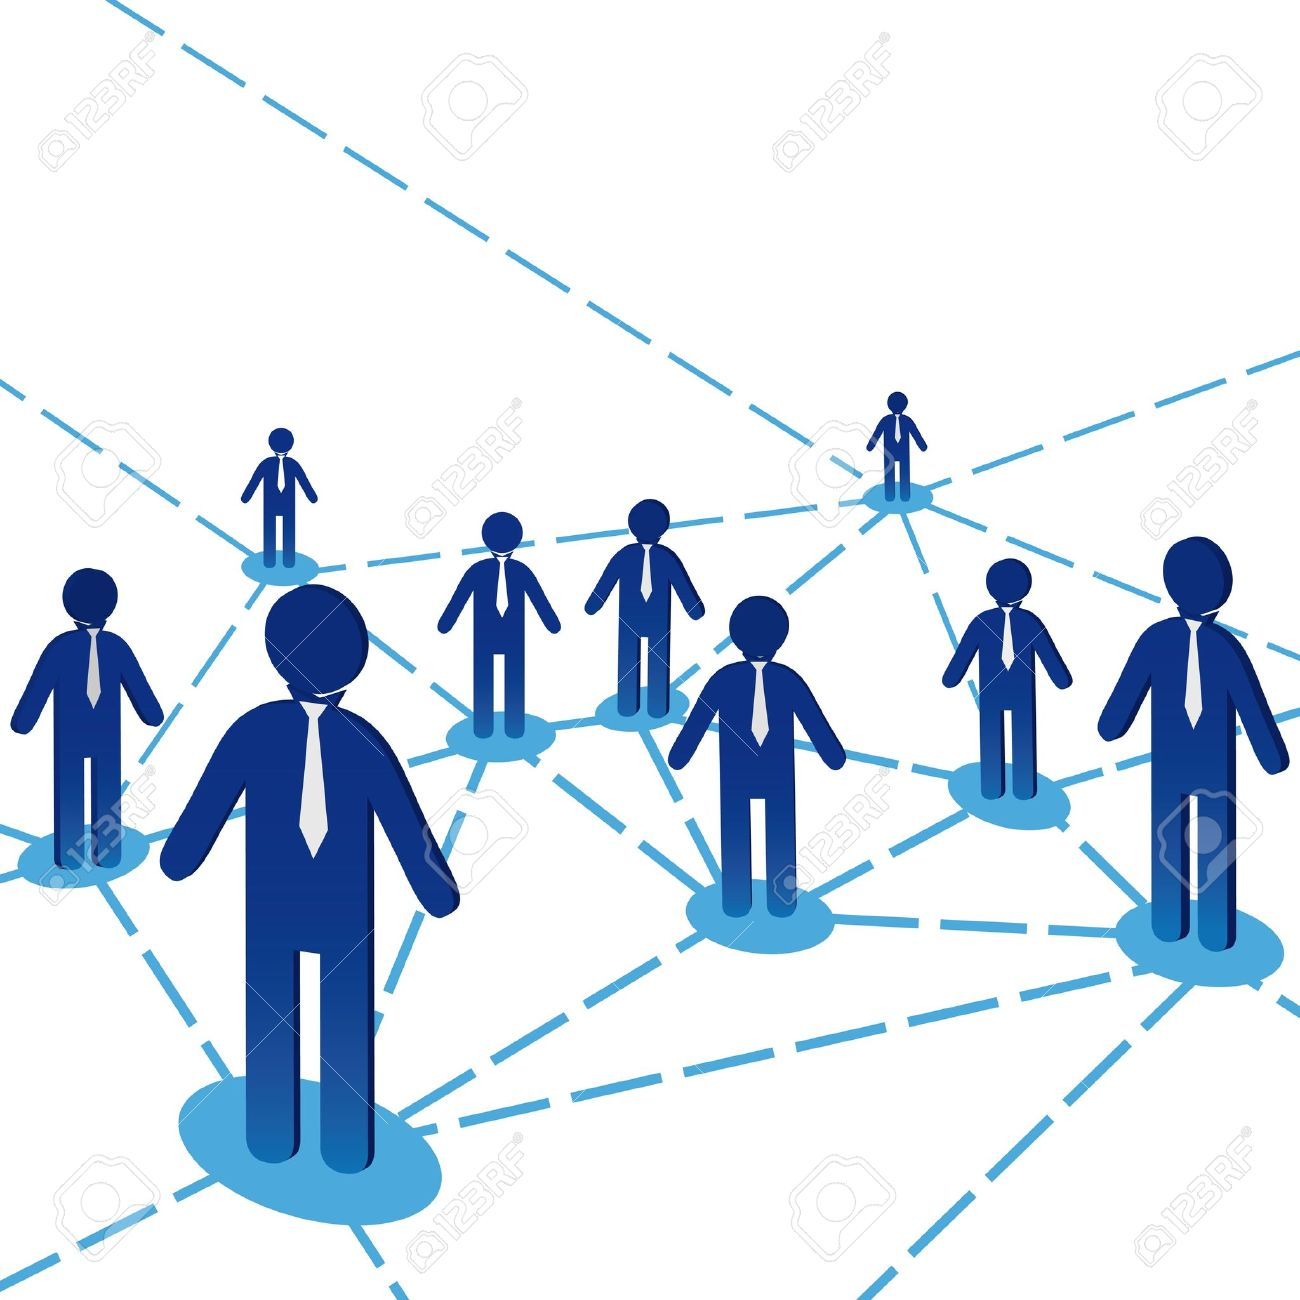 Business Team People Diagram Background Network Internet Communiation Vector Illustration Stock 9314792